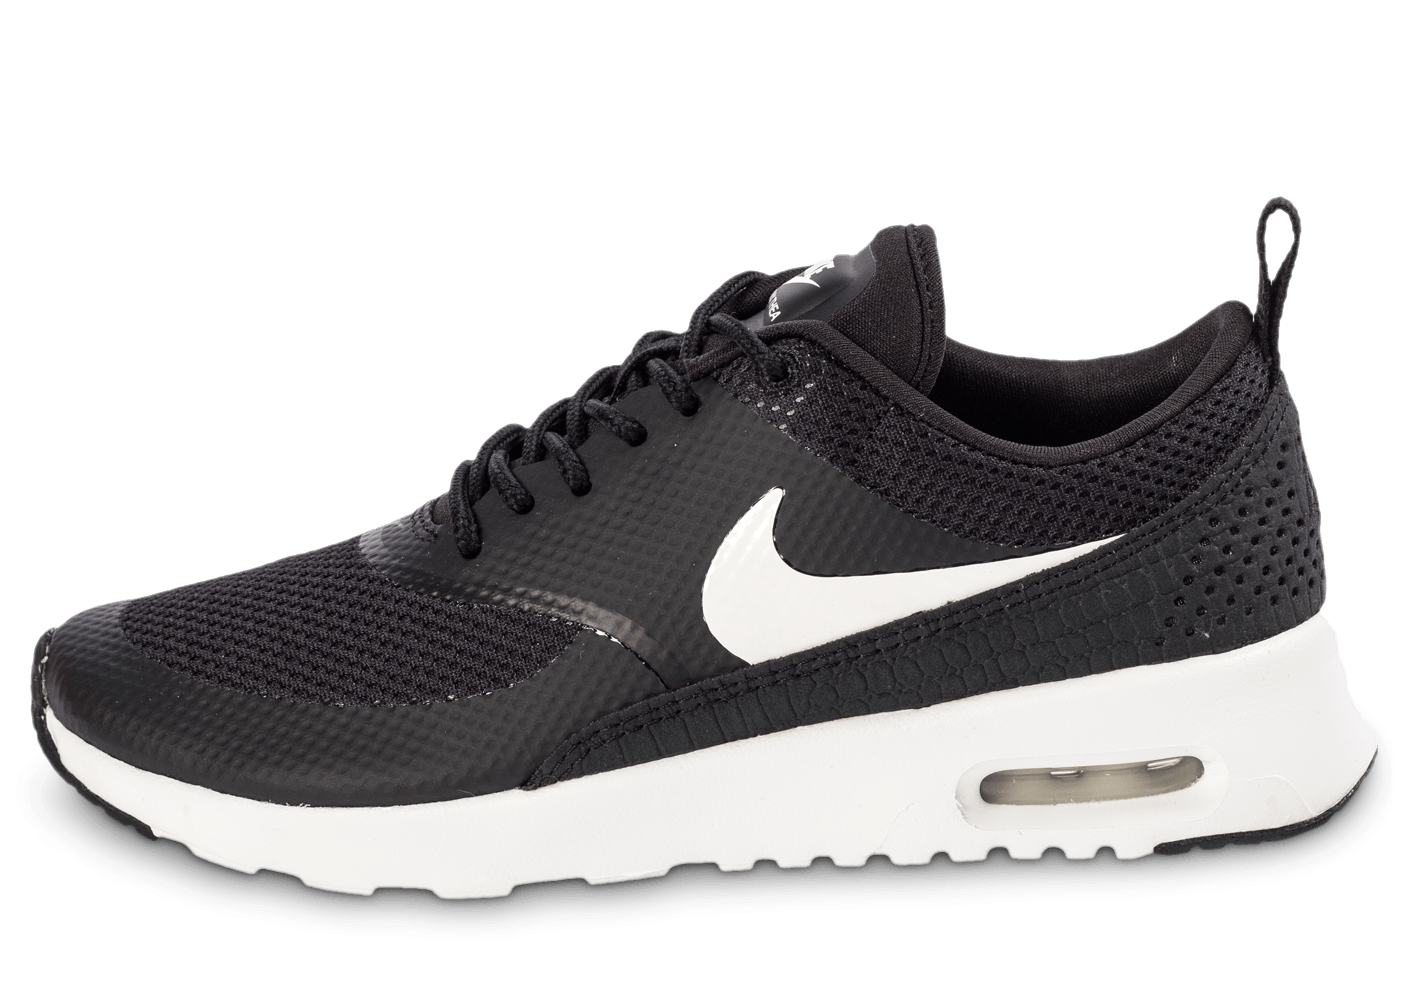 nike air max thea noire et blanche chaussures femme chausport. Black Bedroom Furniture Sets. Home Design Ideas